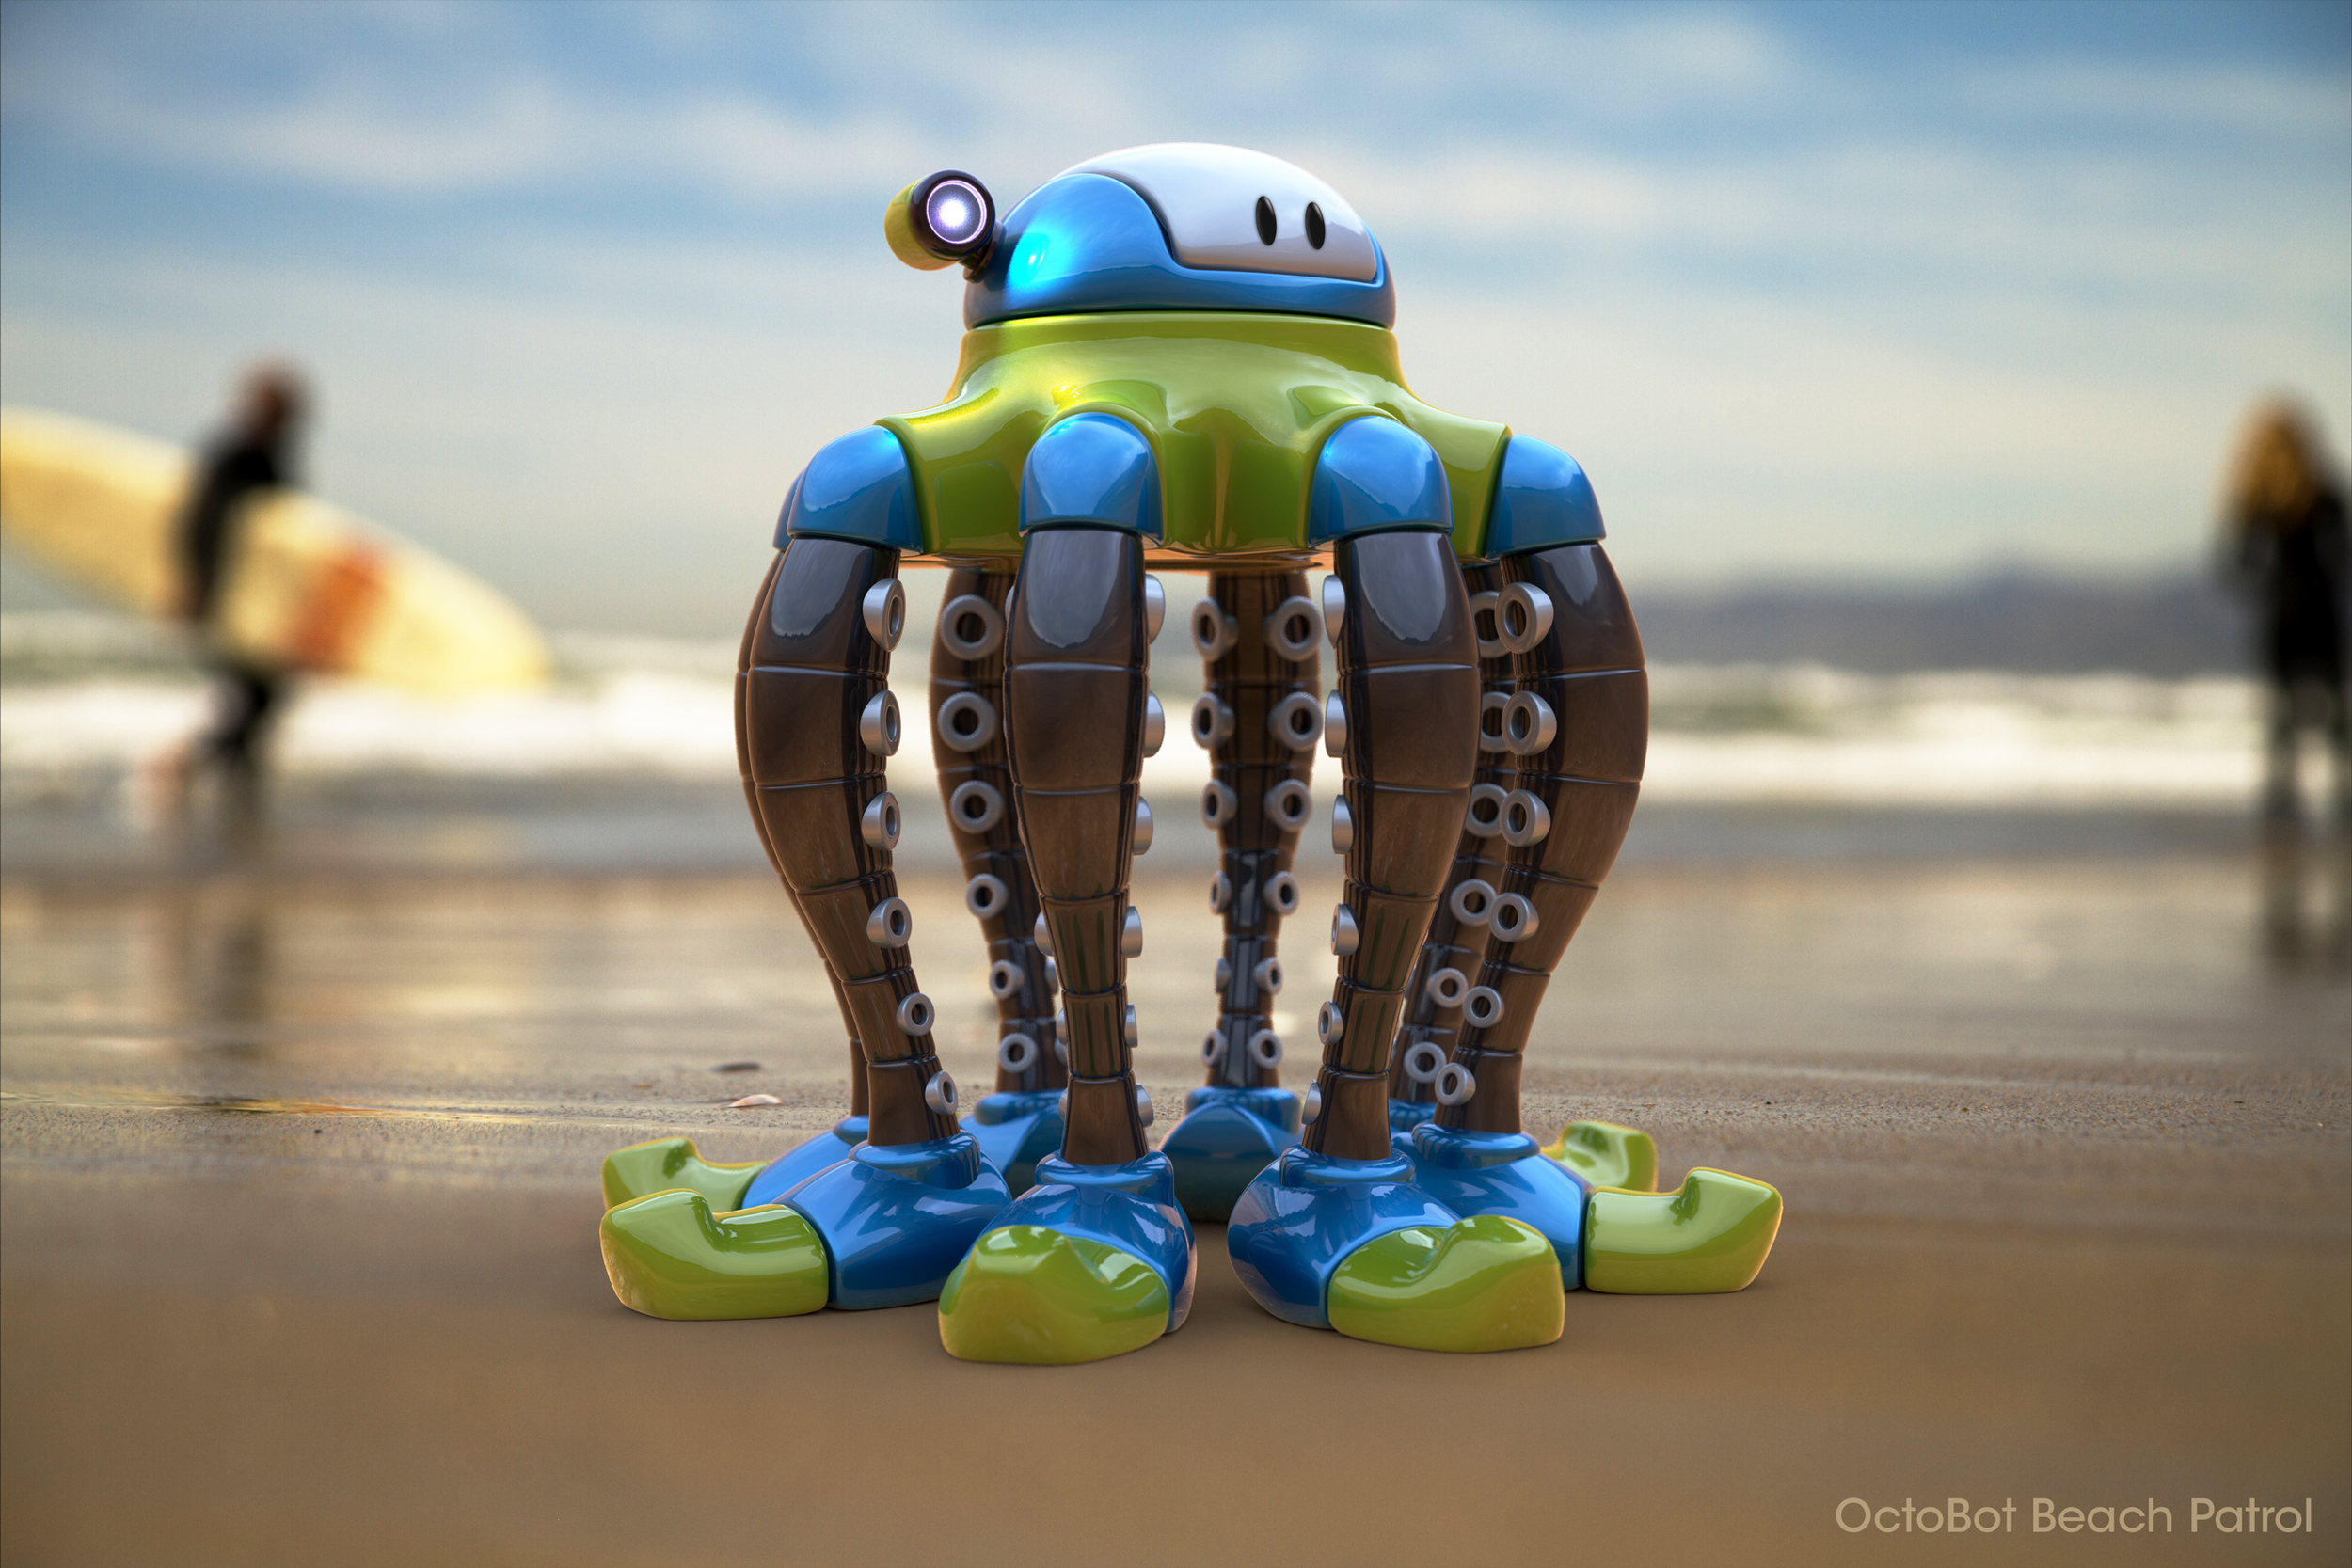 octoBot_beach_patrol.jpg